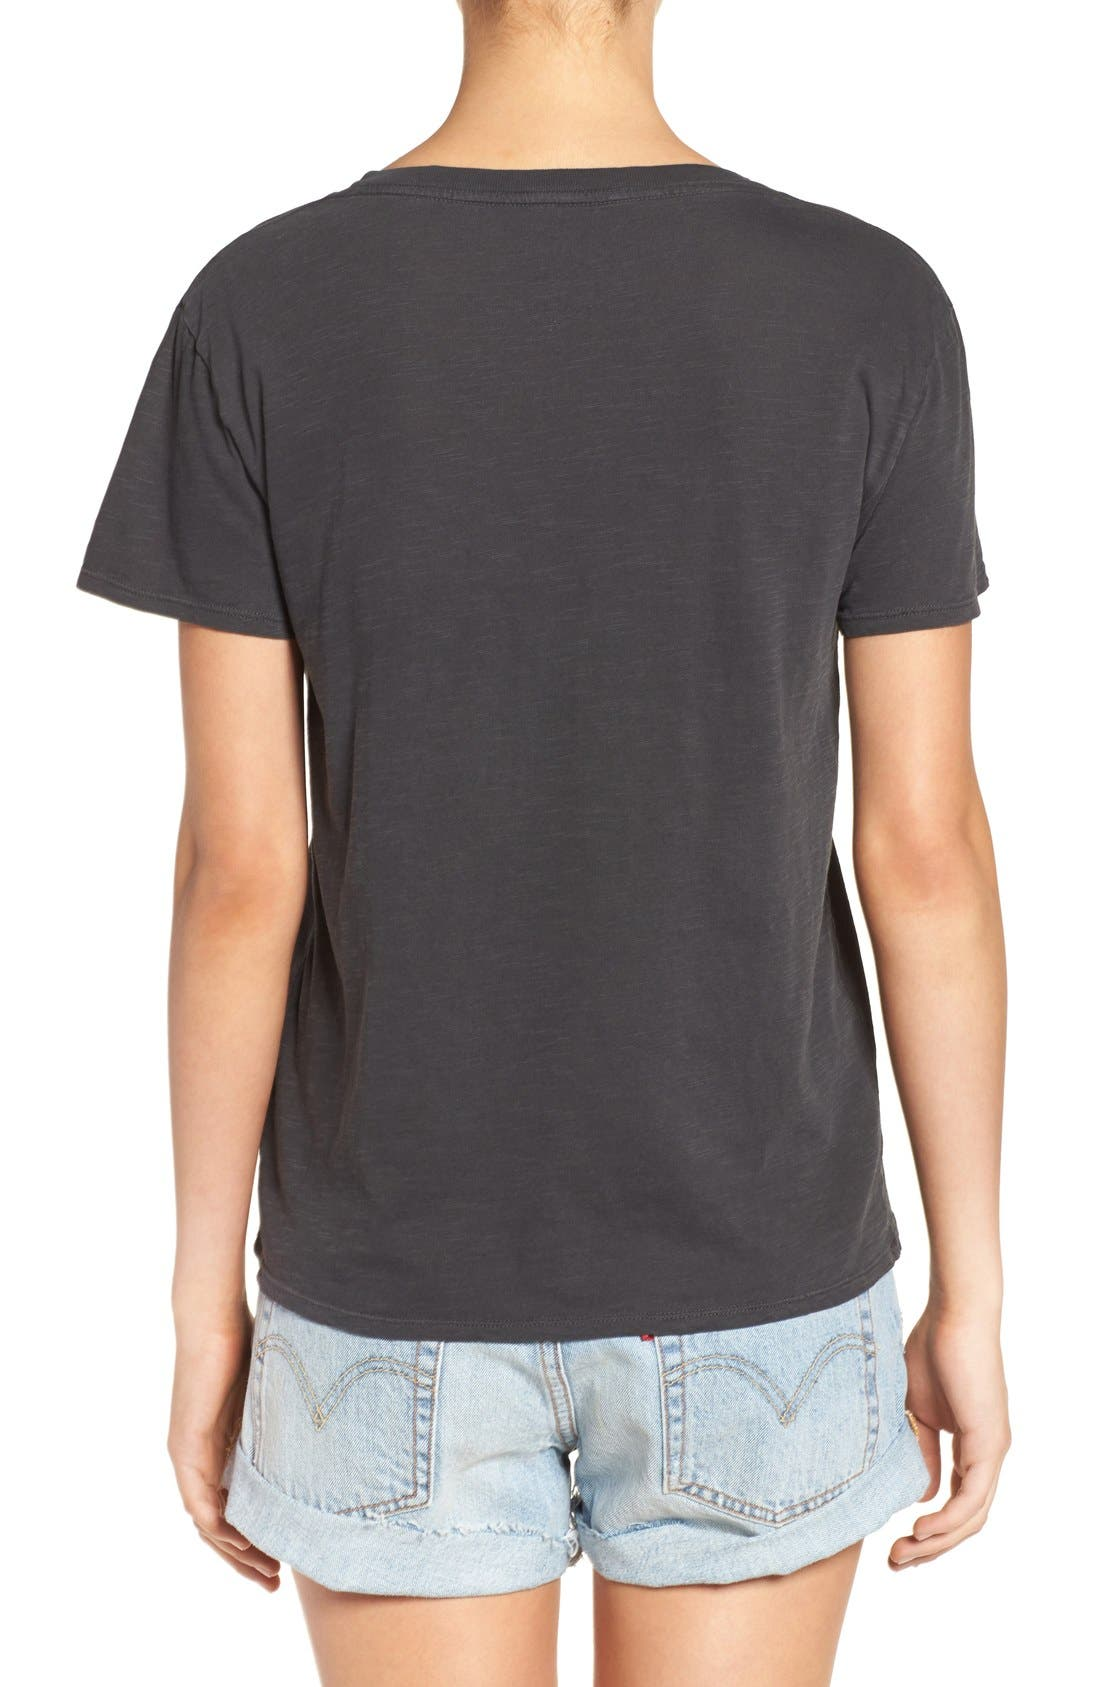 Alternate Image 2  - Billabong 'Stay Native' Graphic Tee